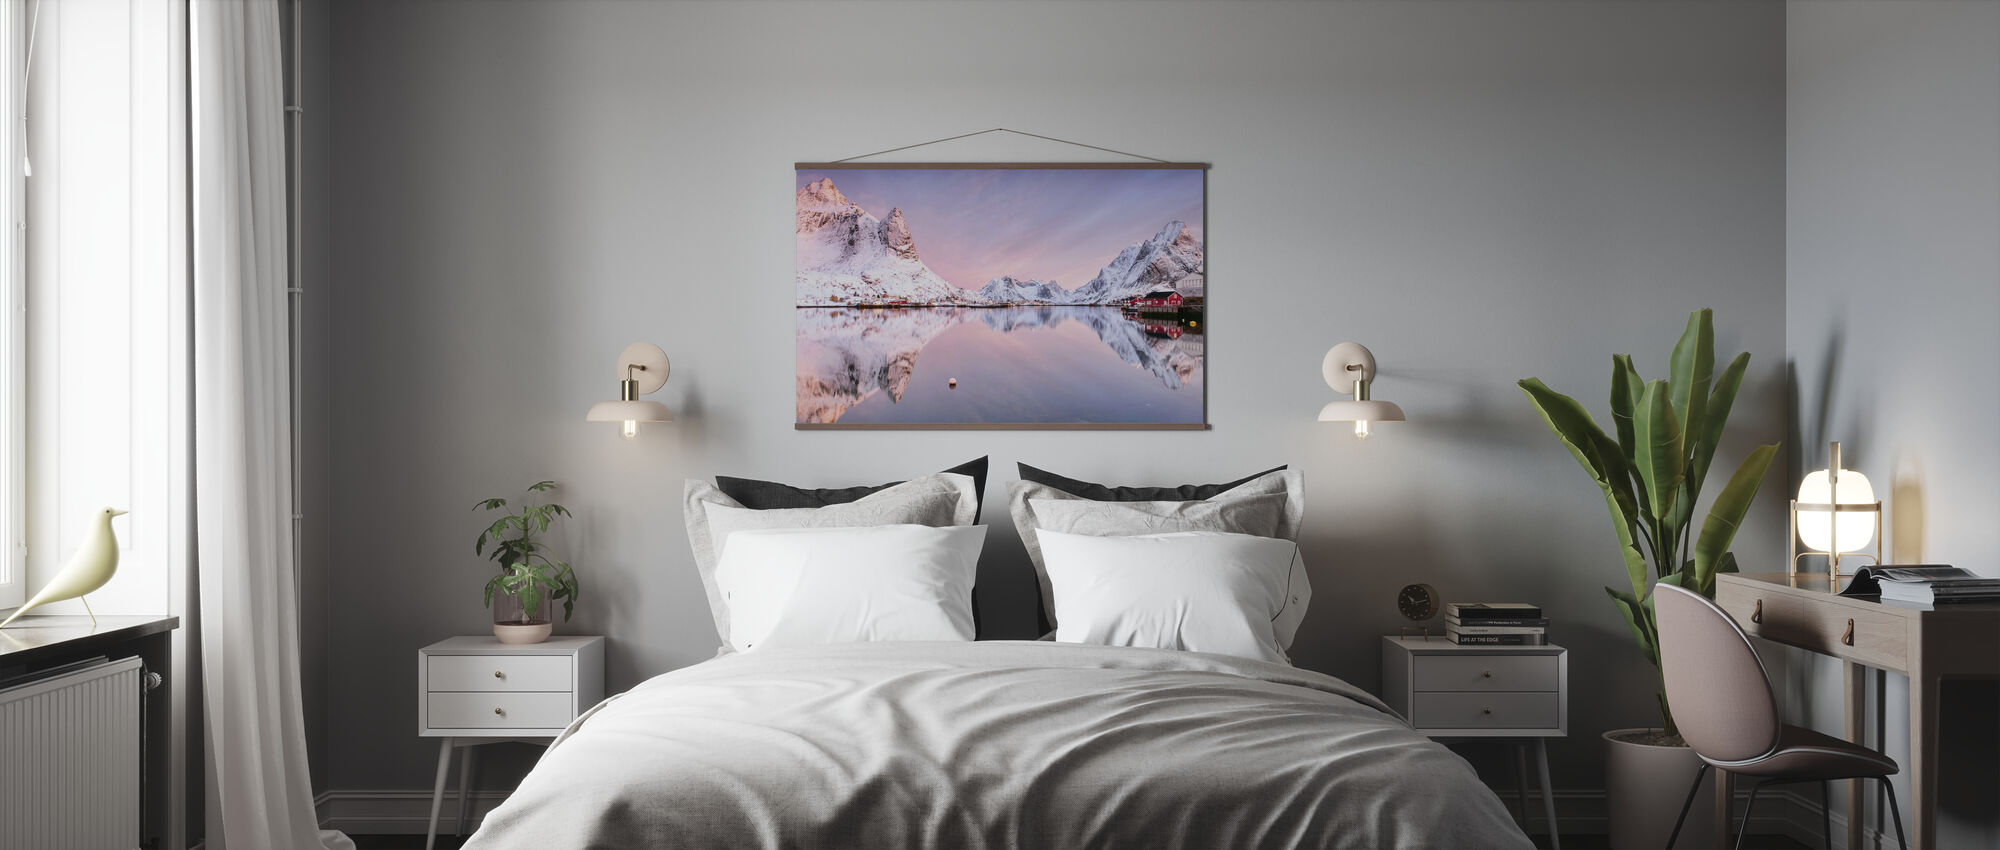 Sunrise at the Fjord - Poster - Bedroom